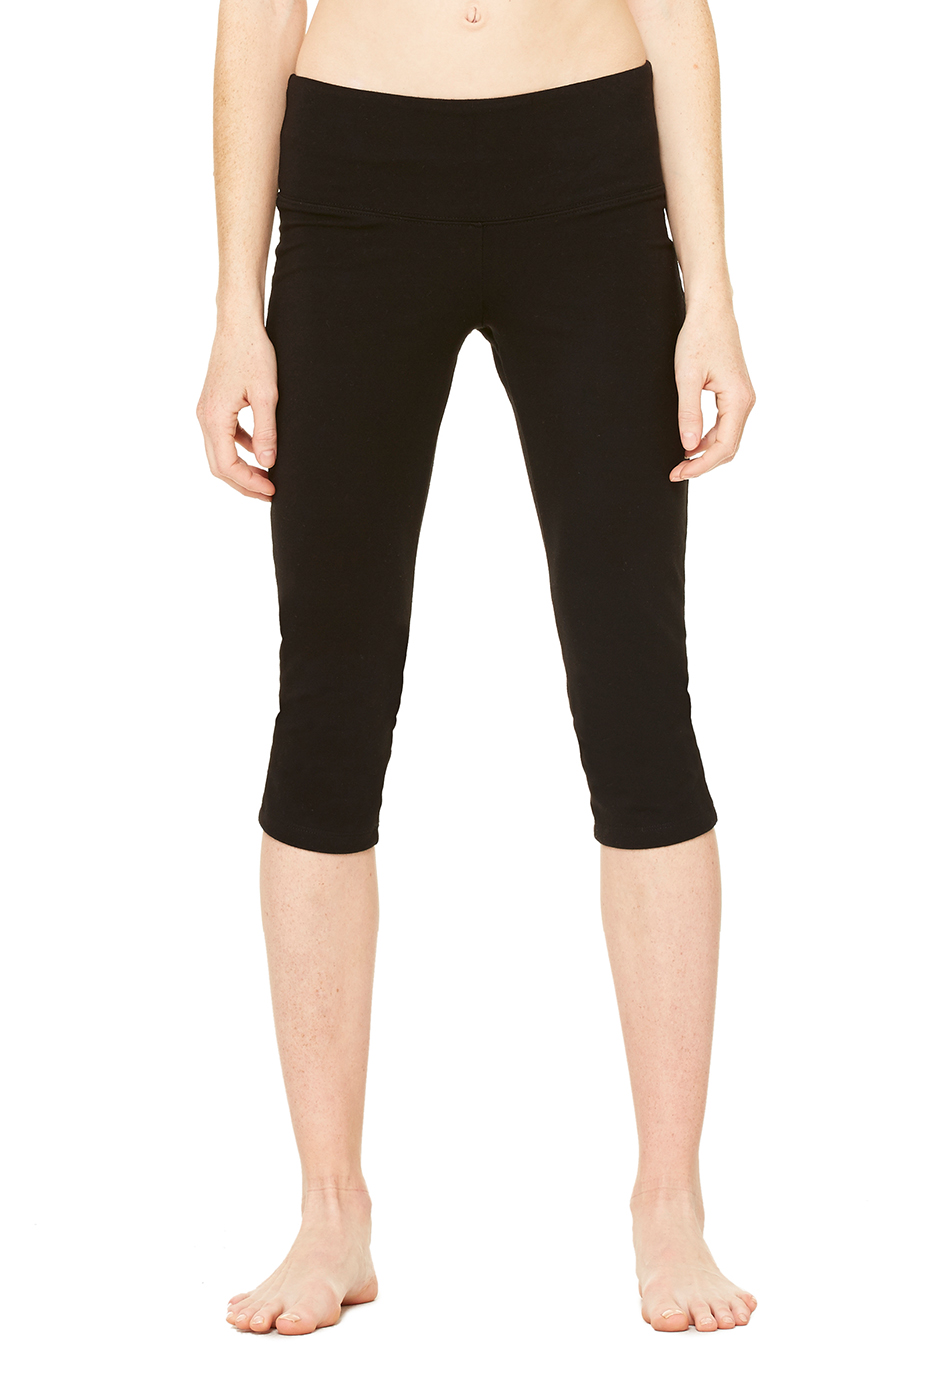 Wholesale Clothing | Cott-Span Capri Fit Legging